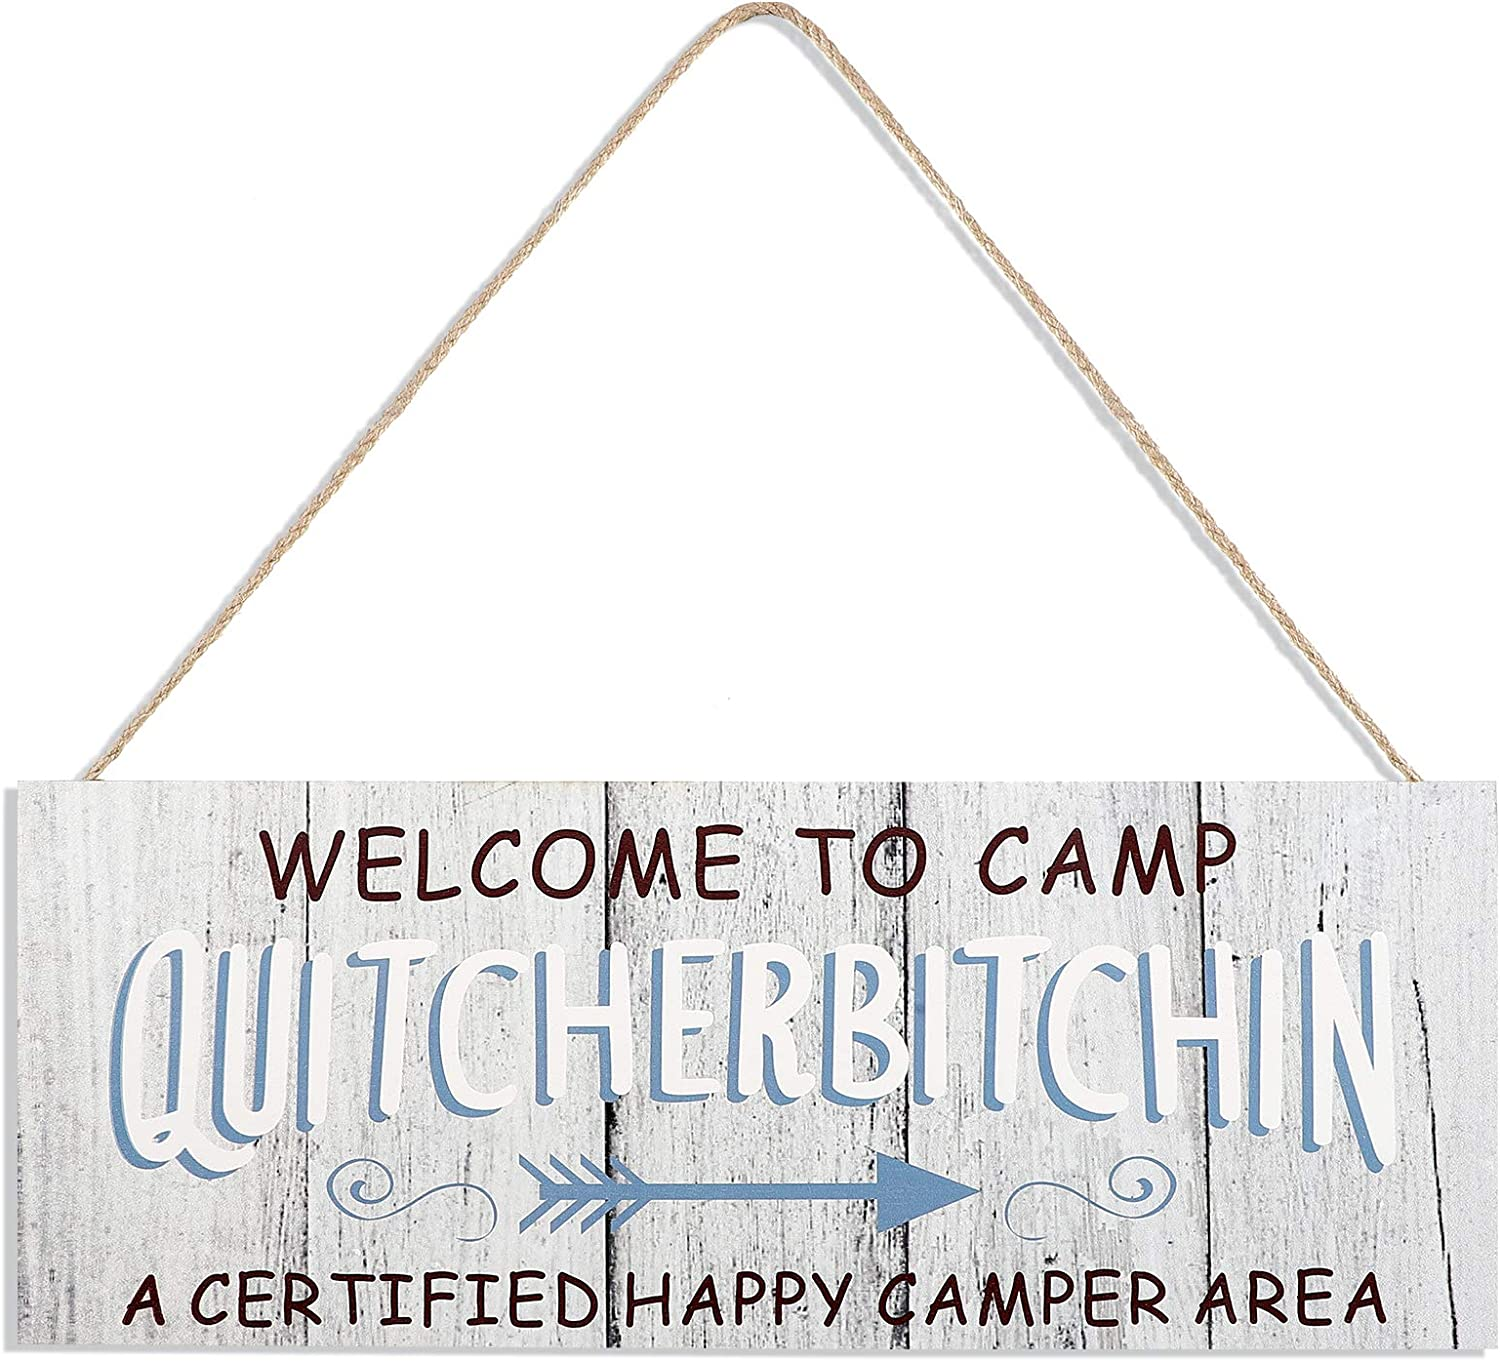 Jetec Welcome to Camp Quitcherbitchin Hanging Sign 13.8 x 5.2 Inch Wooden Camping Decor Plaque Camp Hanging Decoration for Campers Camping Outdoor Activities Home Decorations